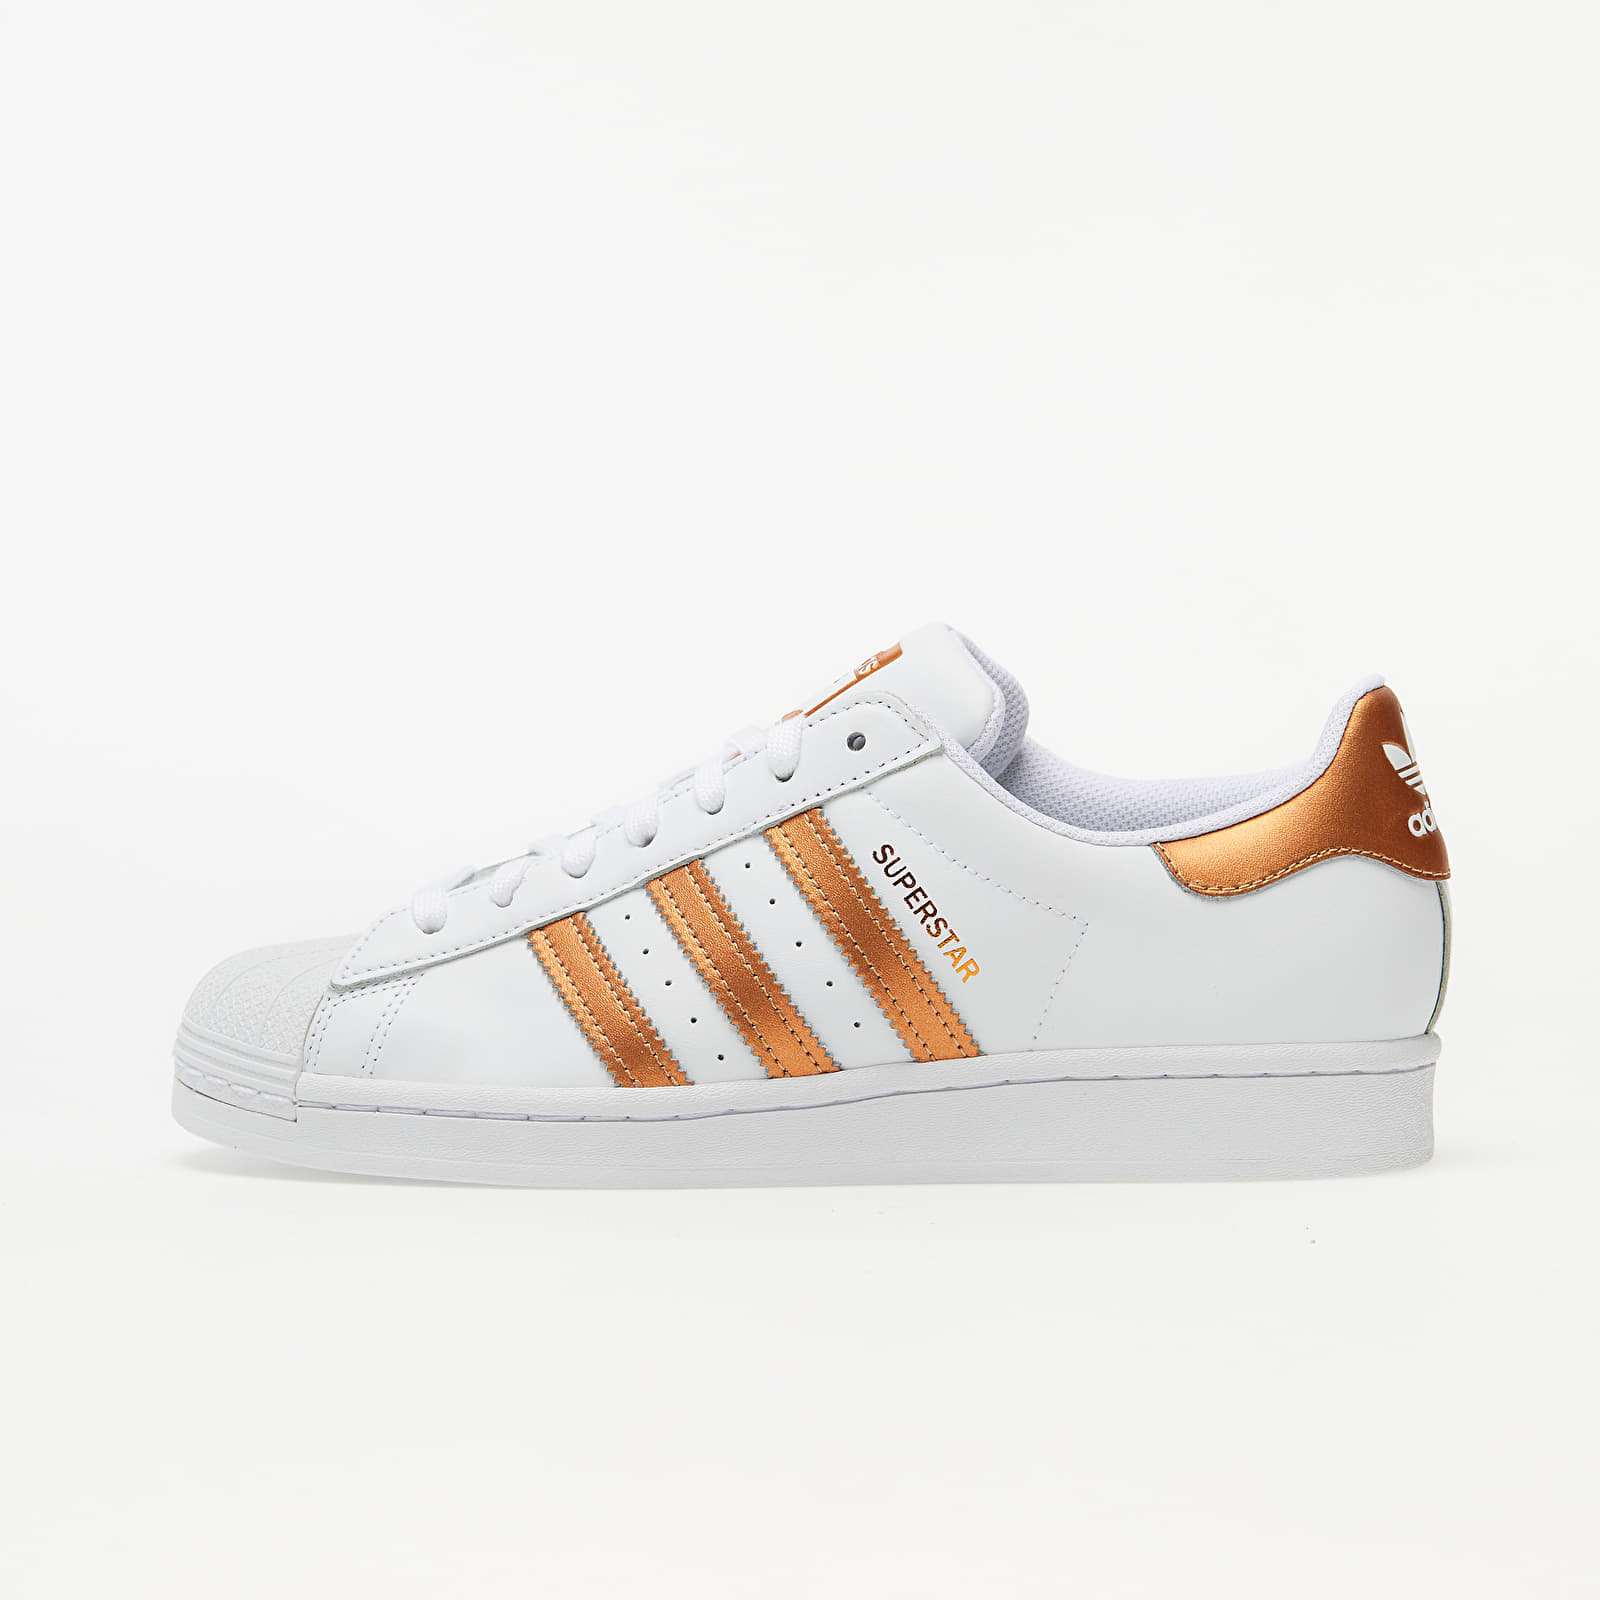 Női cipők adidas Superstar W Ftw White/ Copper Metalic/ Core Black